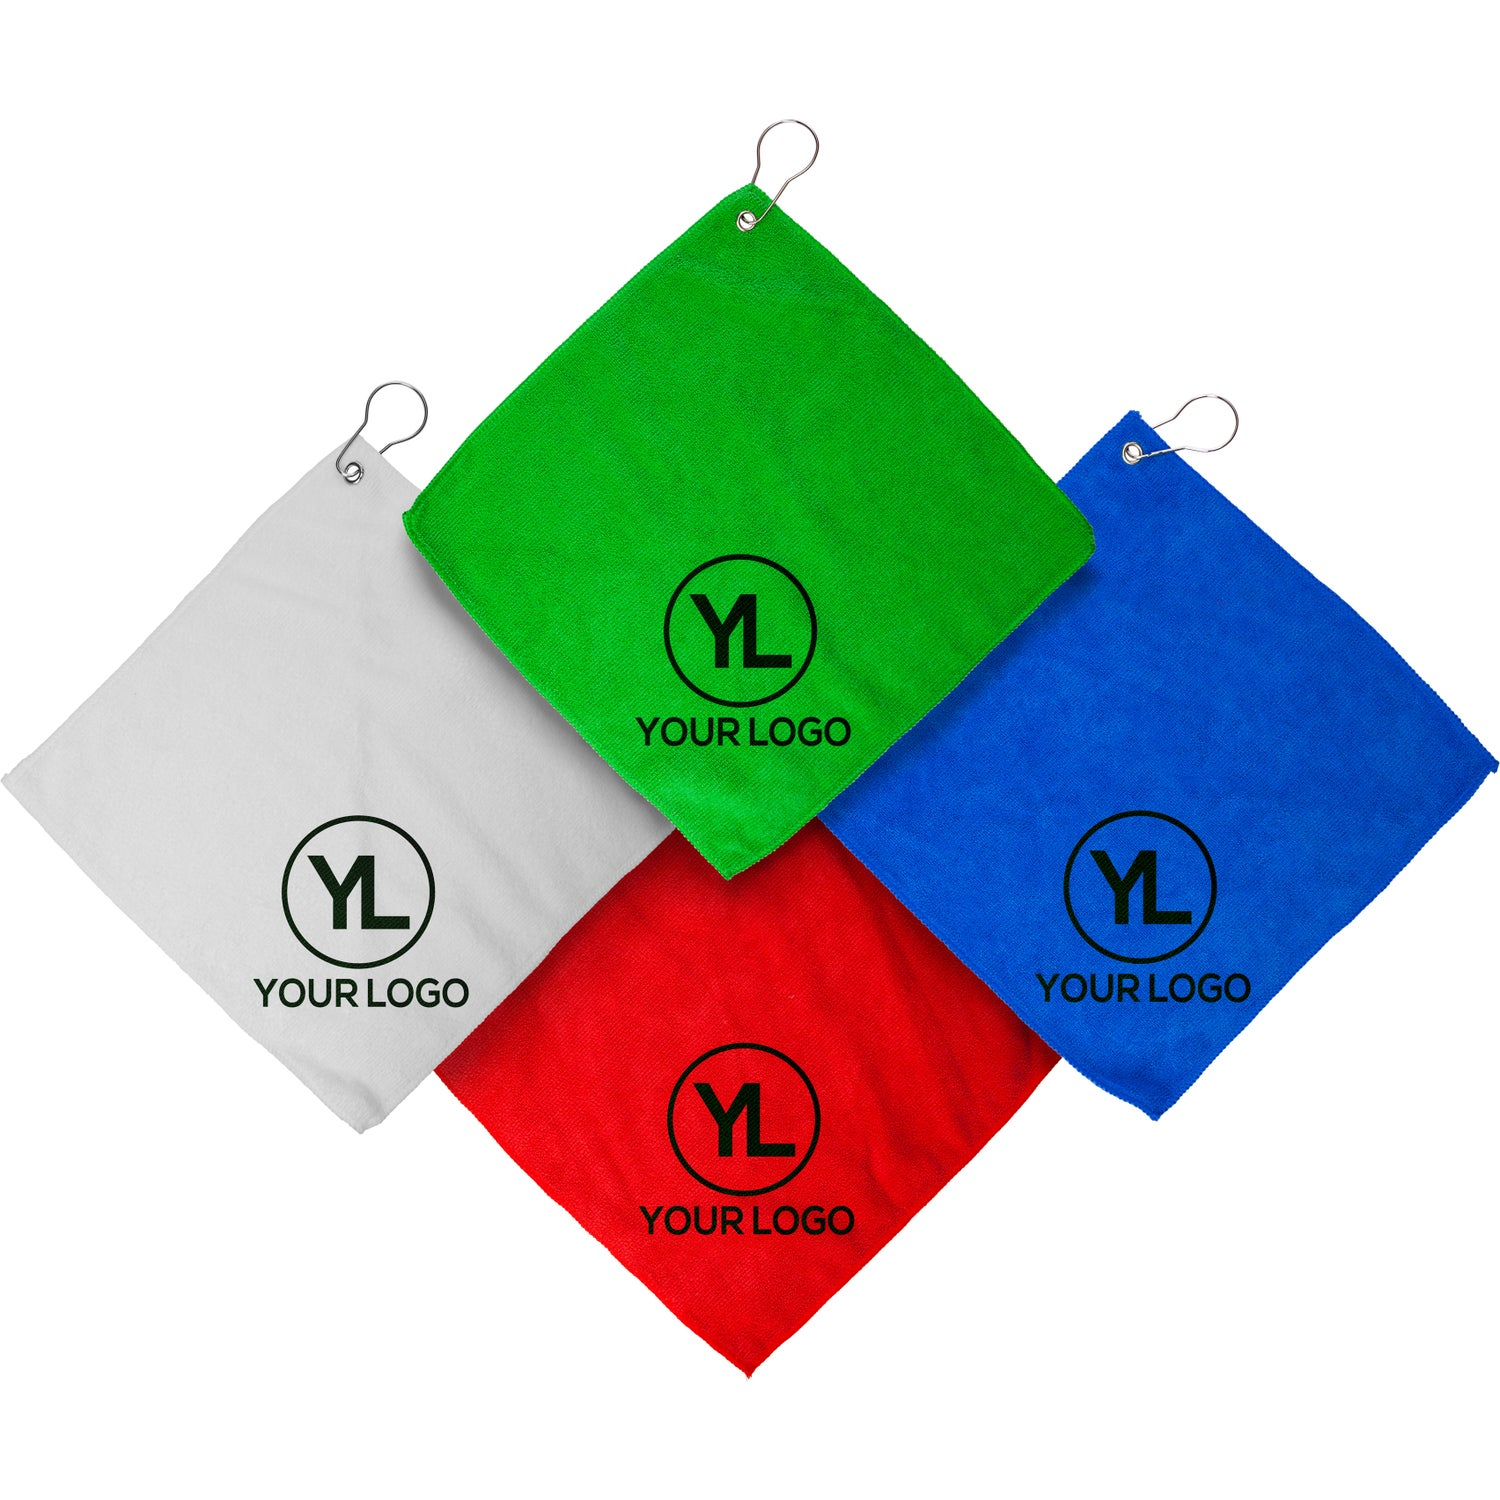 Custom Golf Towels Amp Personalized Golf Towels Quality